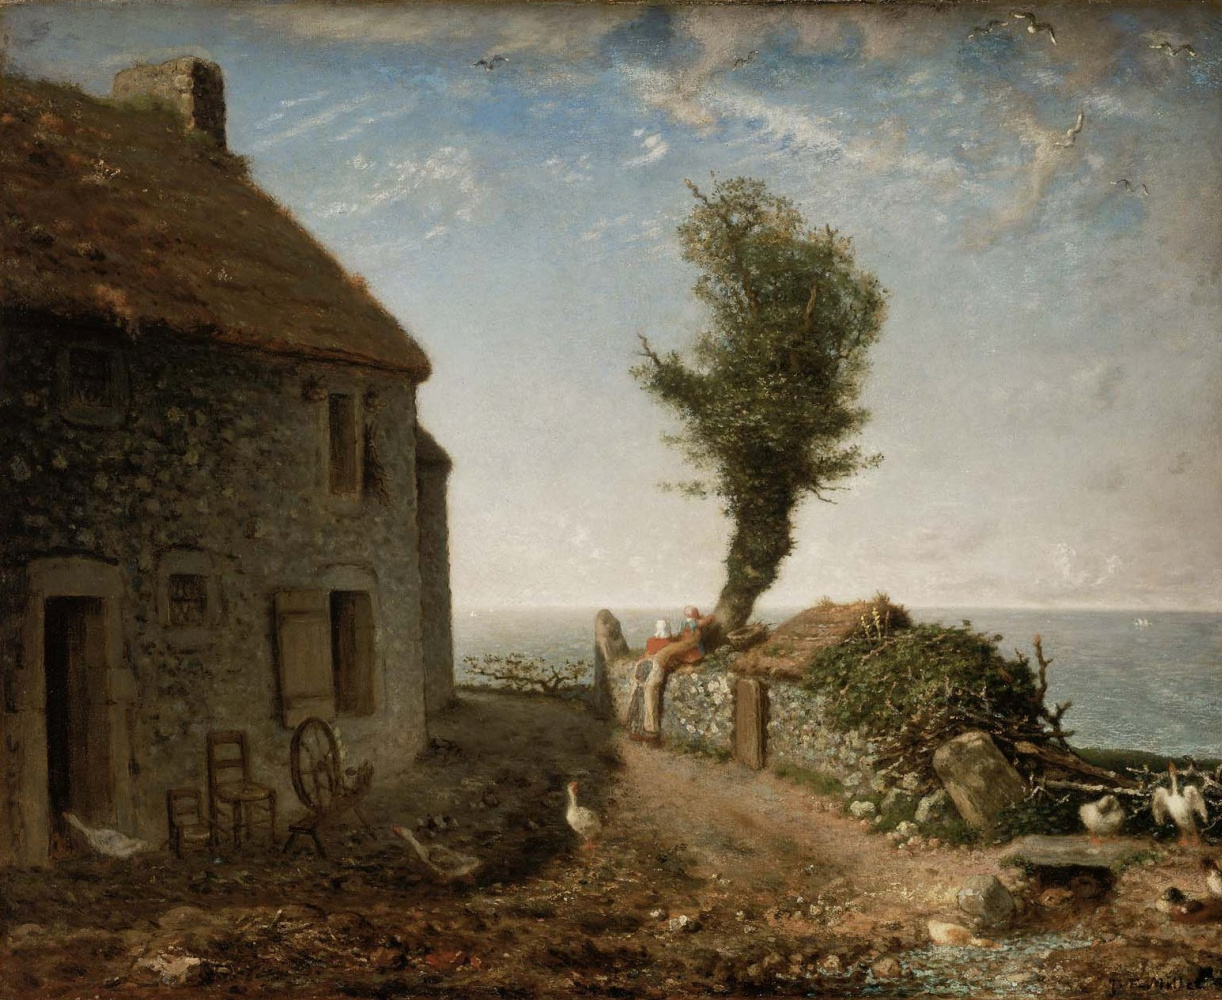 Jean-François Millet. House on the outskirts of Gruchy, Normandy